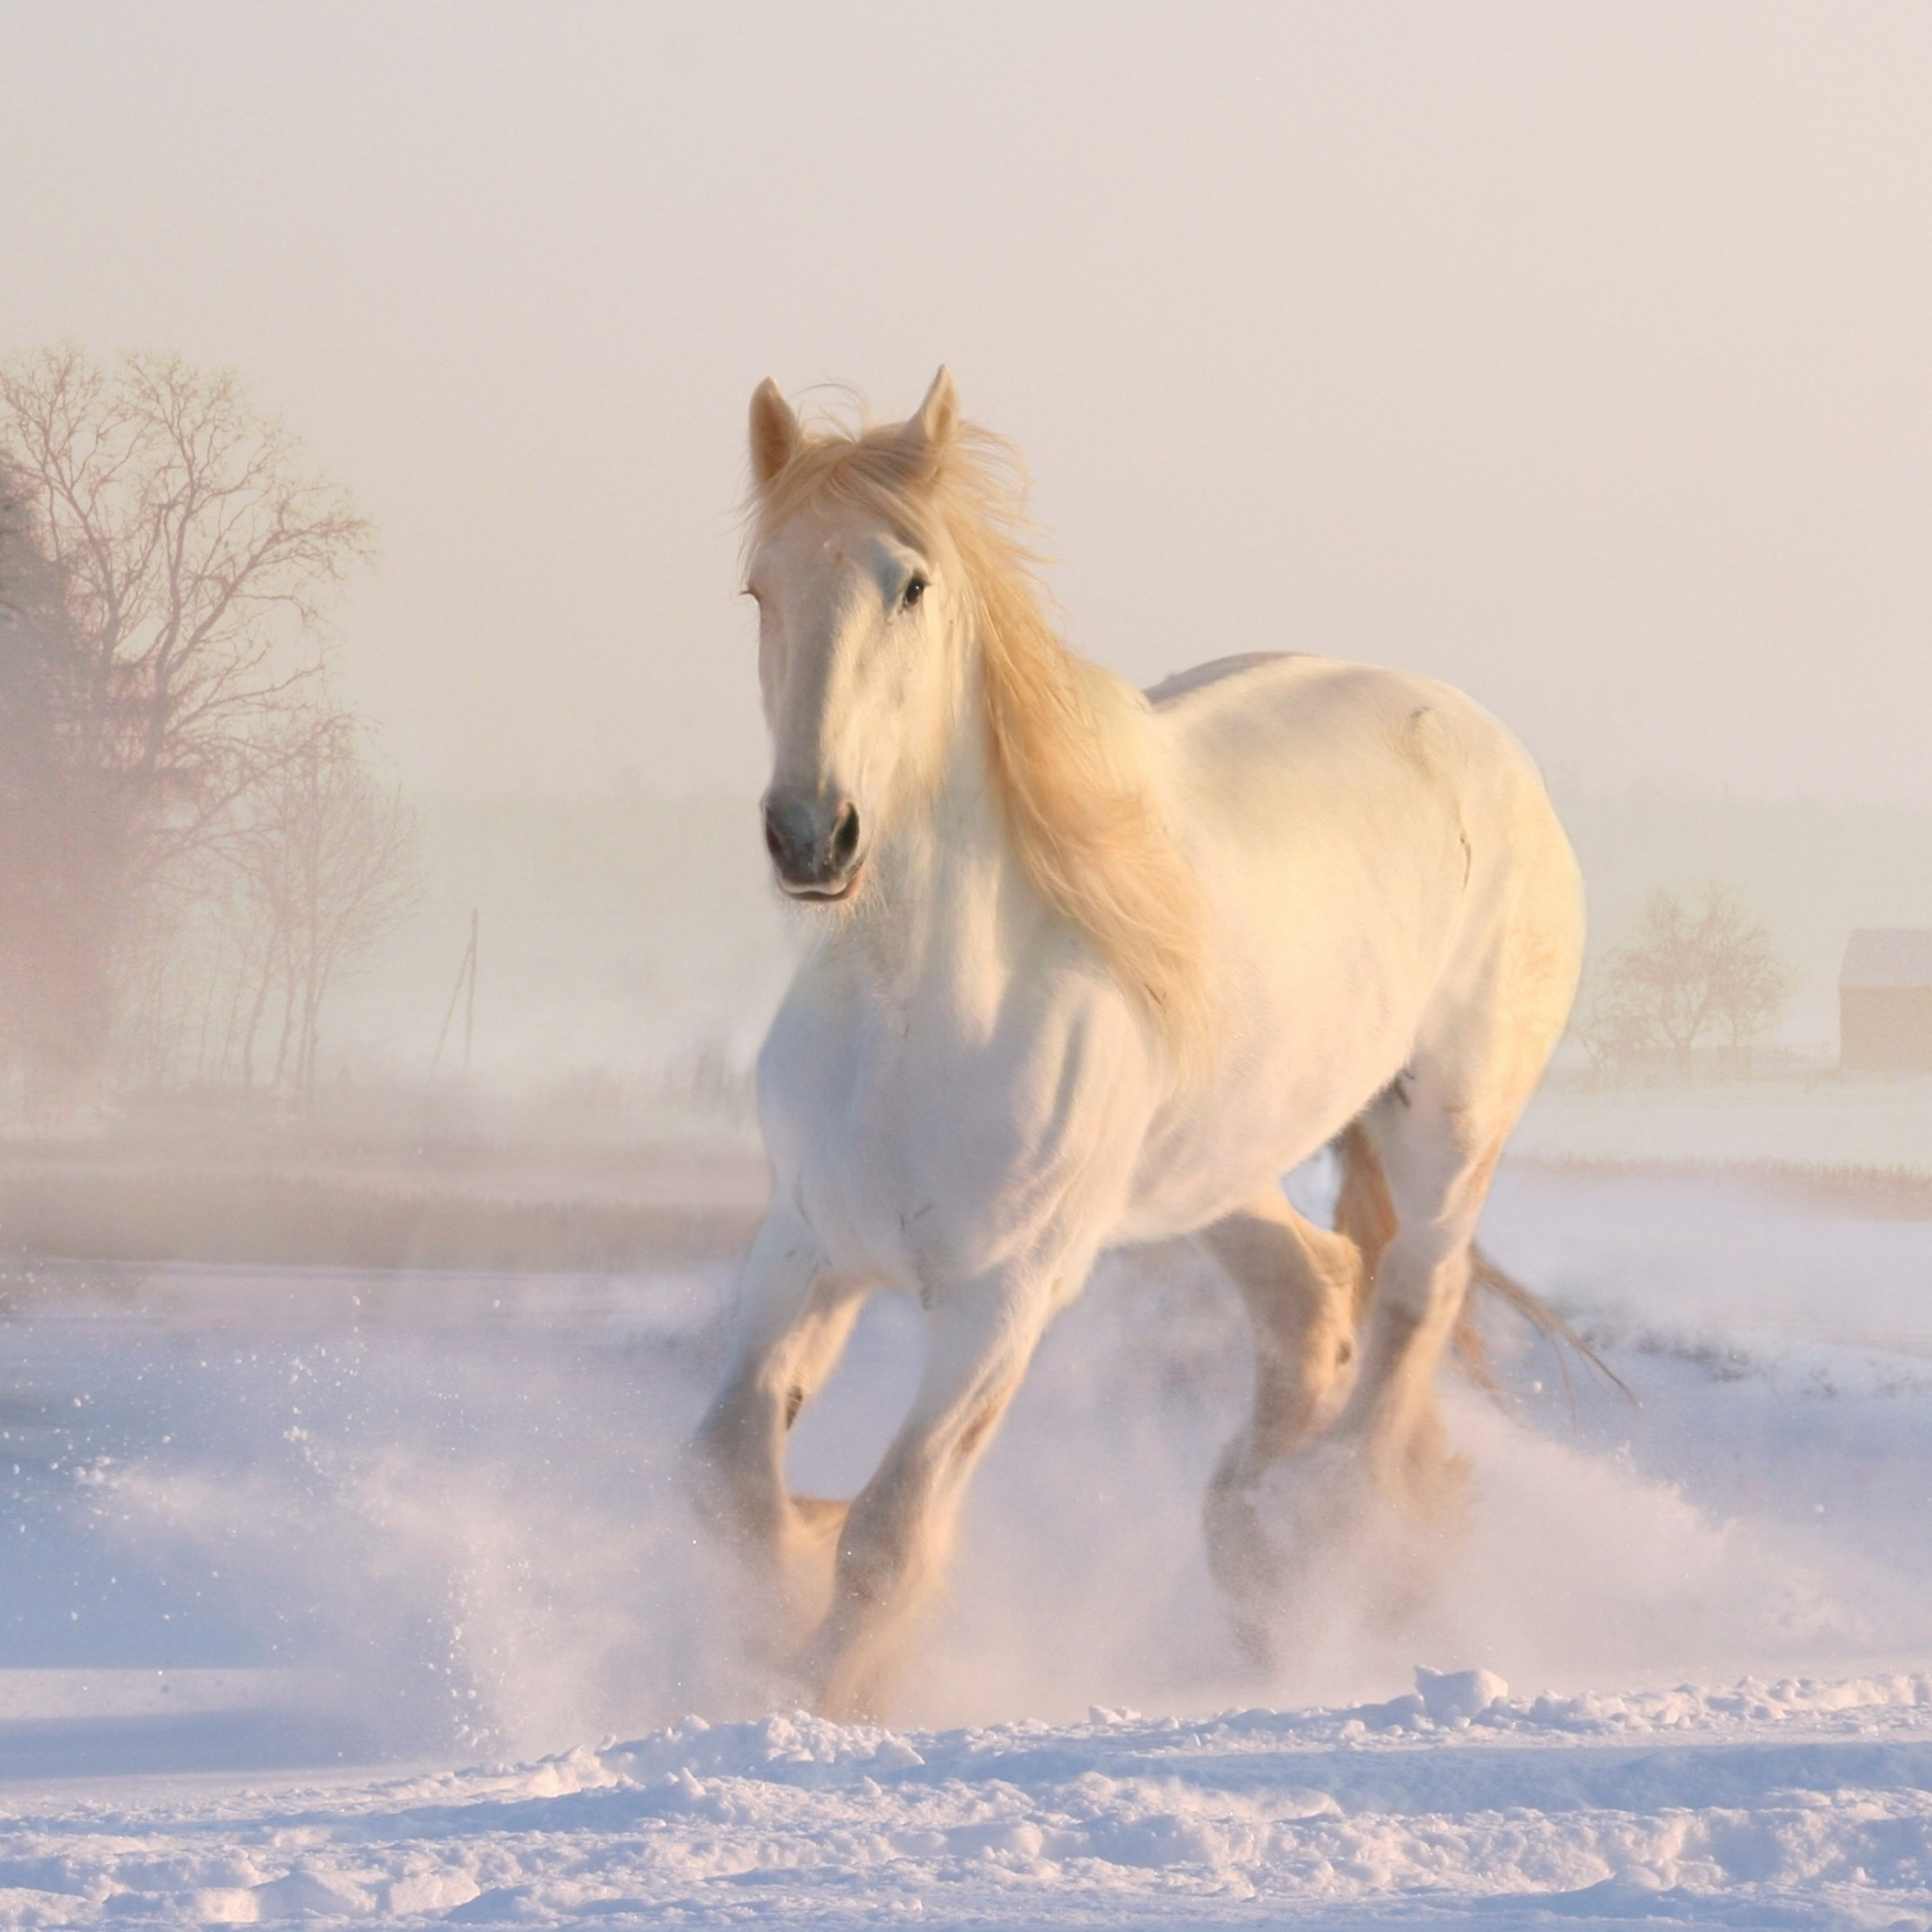 White horse running through snow wallpaper 2224x2224